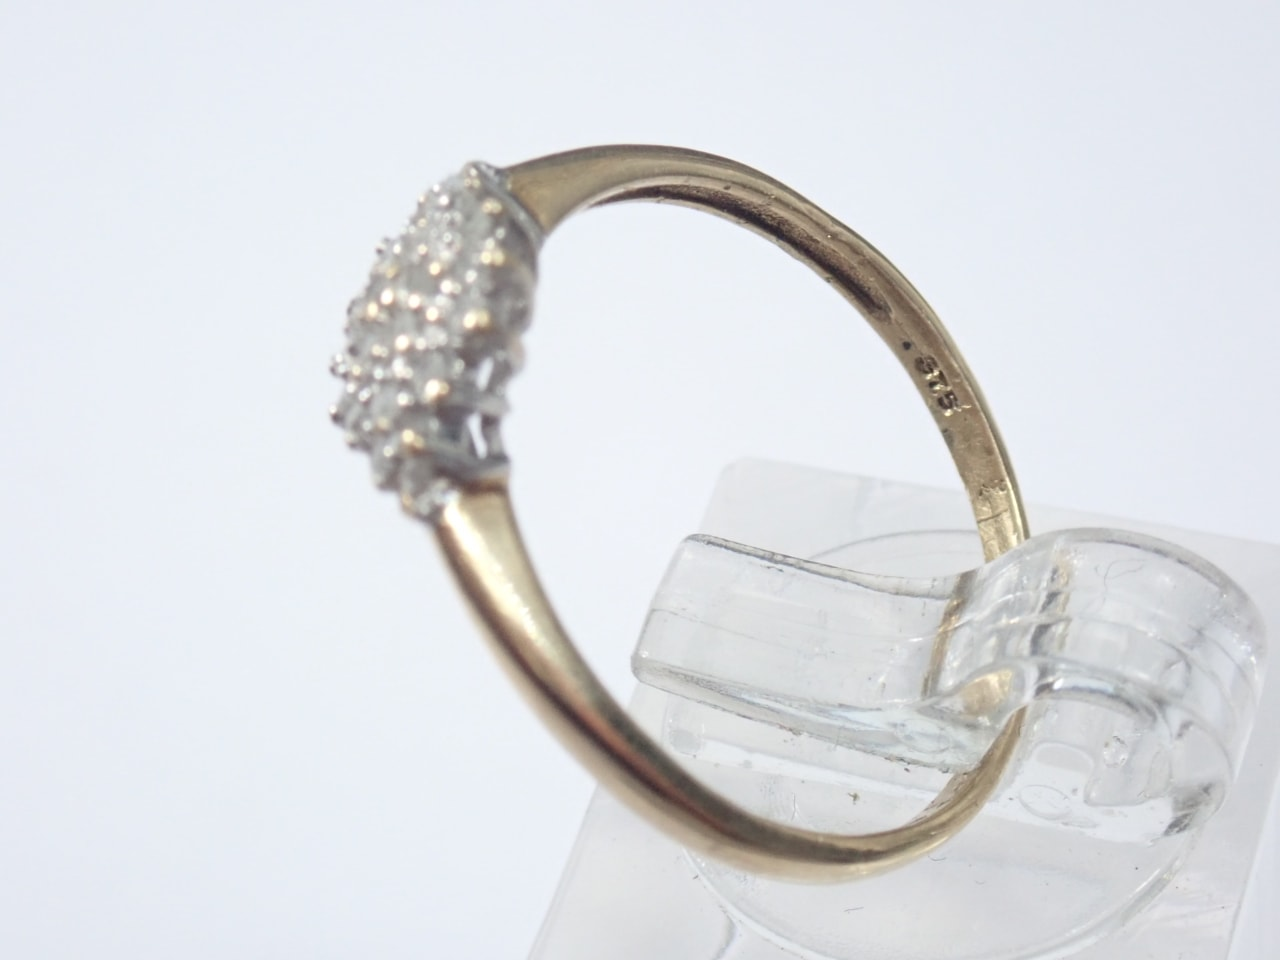 Gold Diamond Cluster Ring - 9K Yellow Gold Size Q1/2 - 1.6 grams